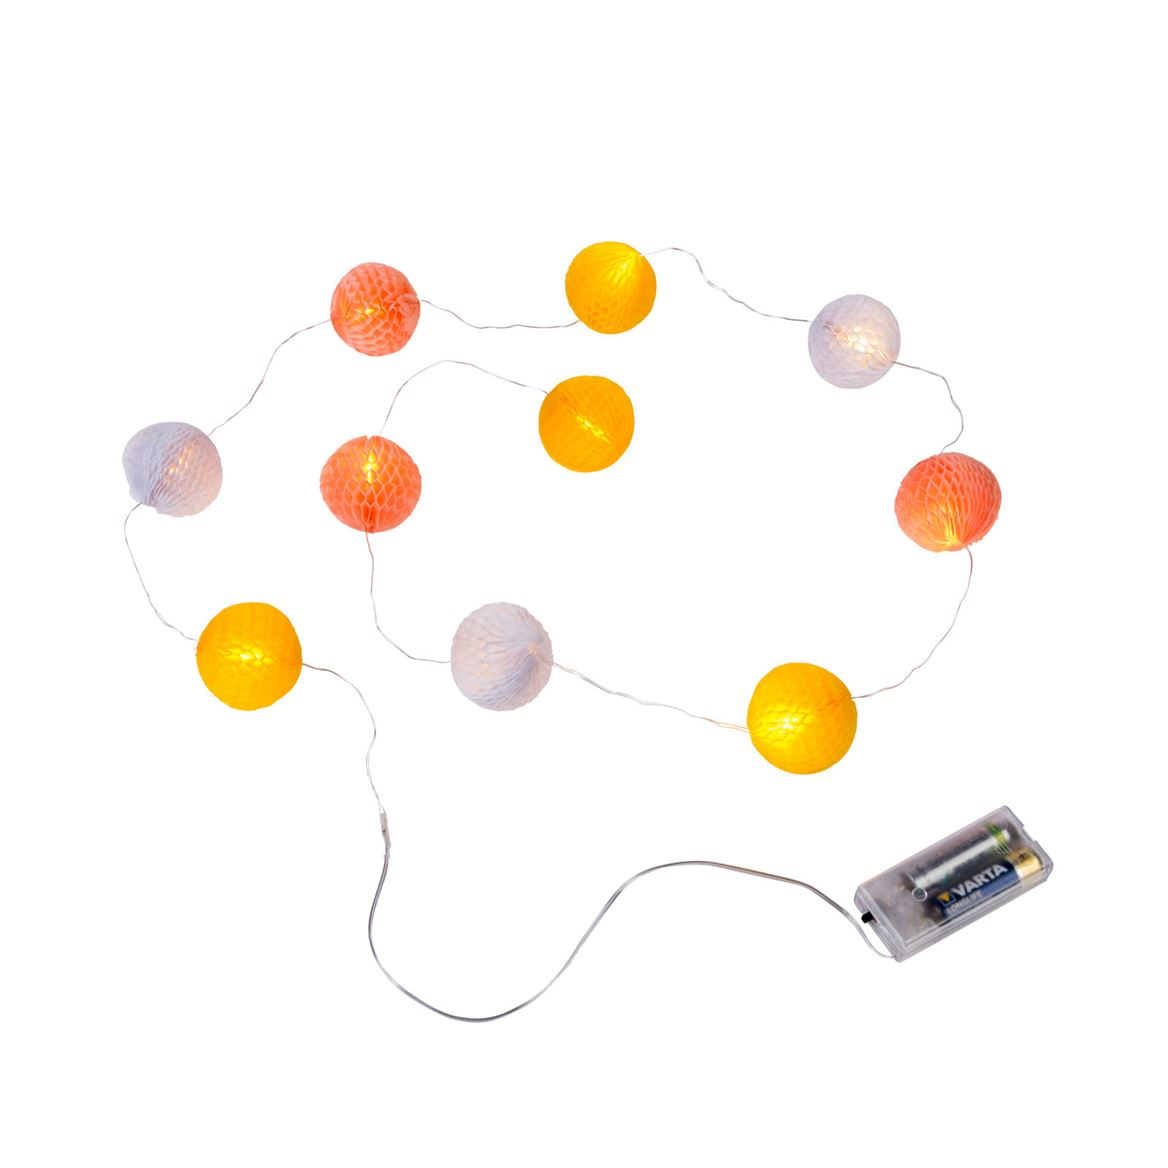 DOTTA Filo luminoso con 10 luci led multicolore L 130 cm_dotta-filo-luminoso-con-10-luci-led-multicolore-l-130-cm